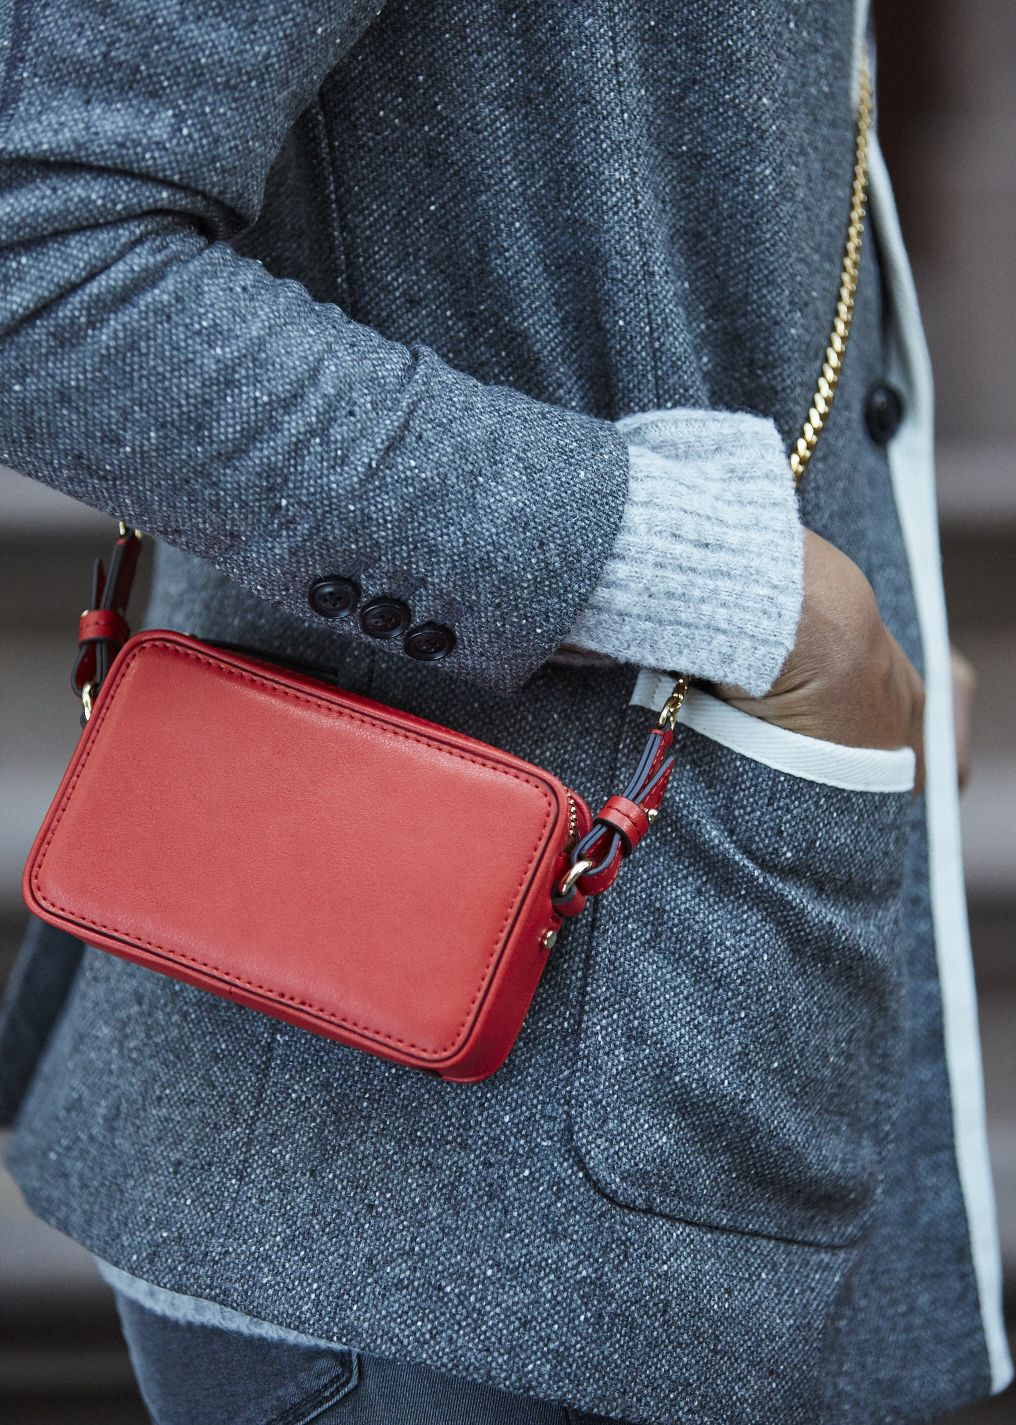 Our mini zip crossbody bag in bright tamale red is the perfect accessory to add a bit of color to your monochromatic cold weather style   Banana Republic